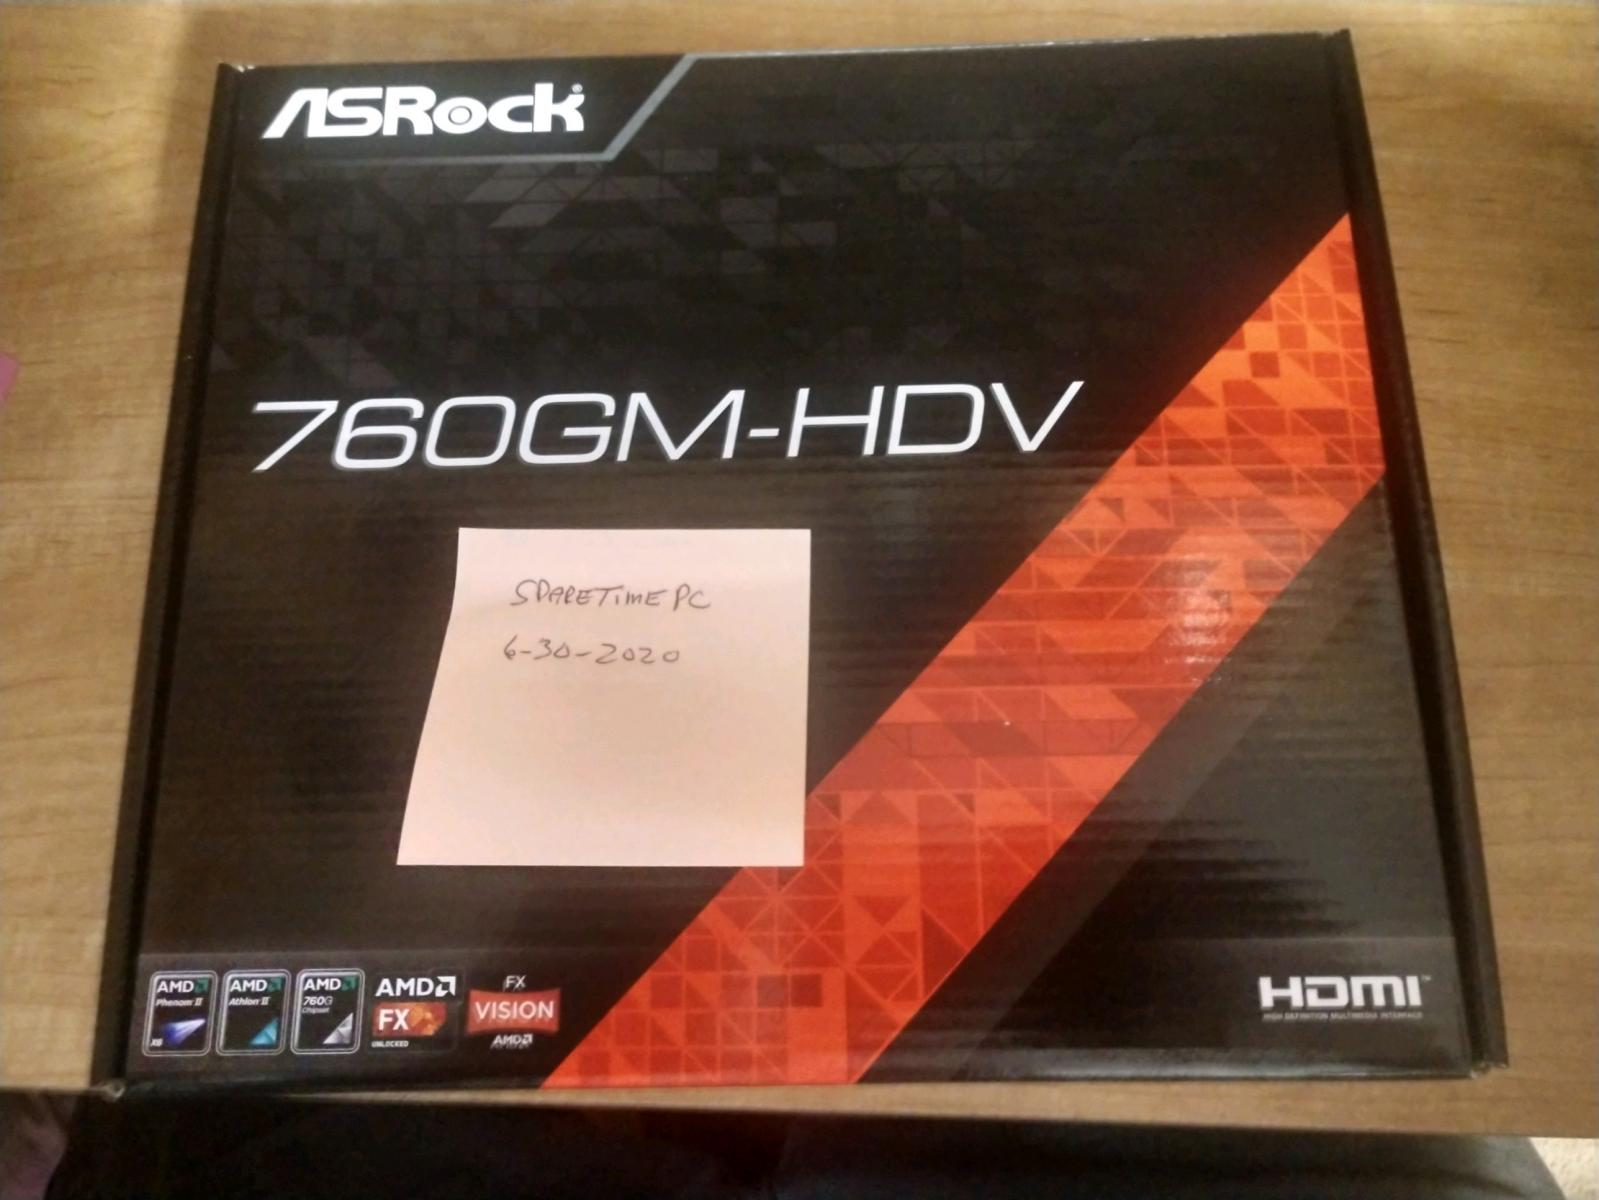 Photo of Asrock 760GM-HDV Motherboard, 16GB 1866MHz DDR3 Nemix Ram, AMD FX 4350 Unlocked